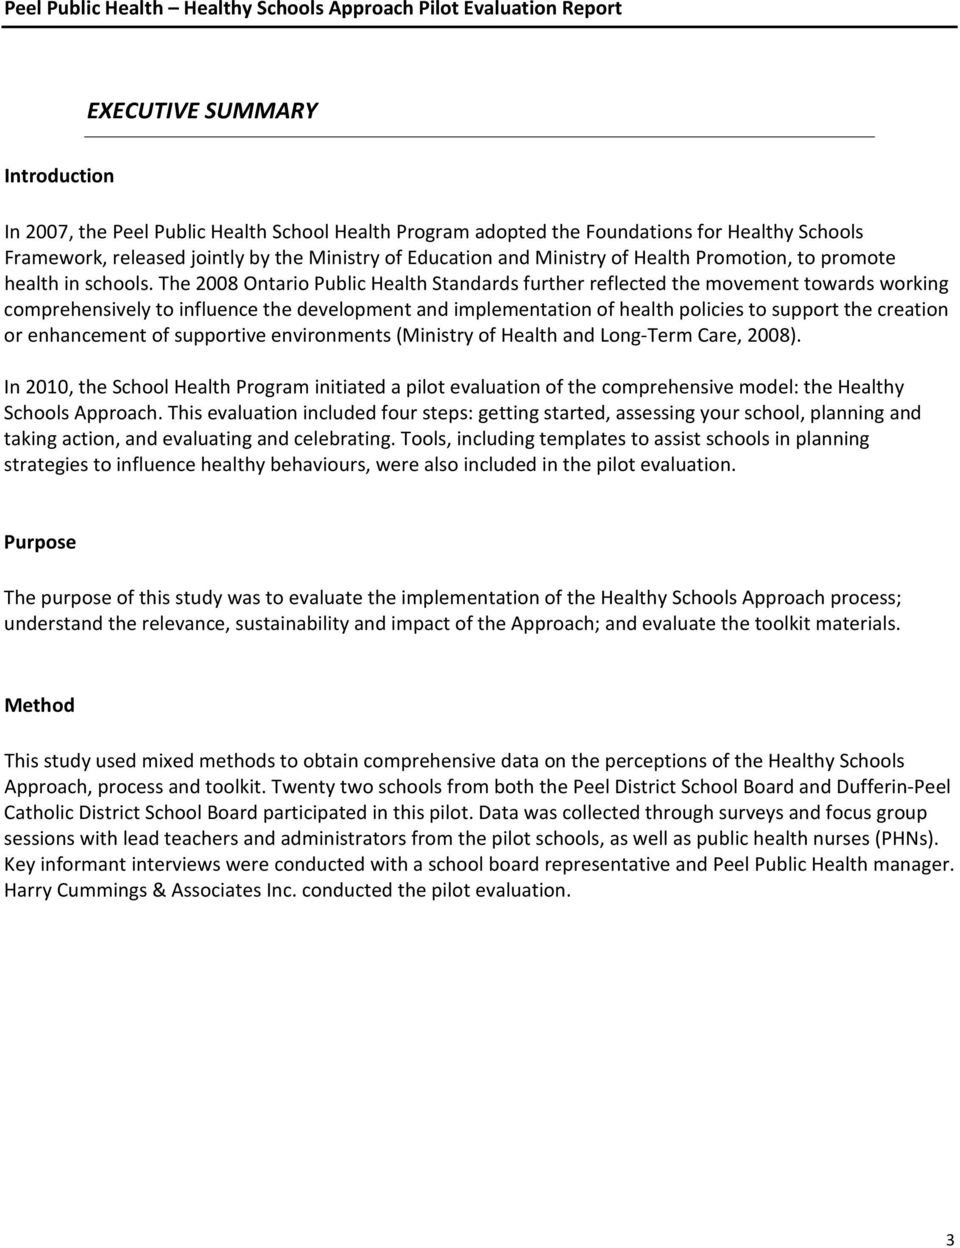 The 2008 Ontario Public Health Standards further reflected the movement towards working comprehensively to influence the development and implementation of health policies to support the creation or